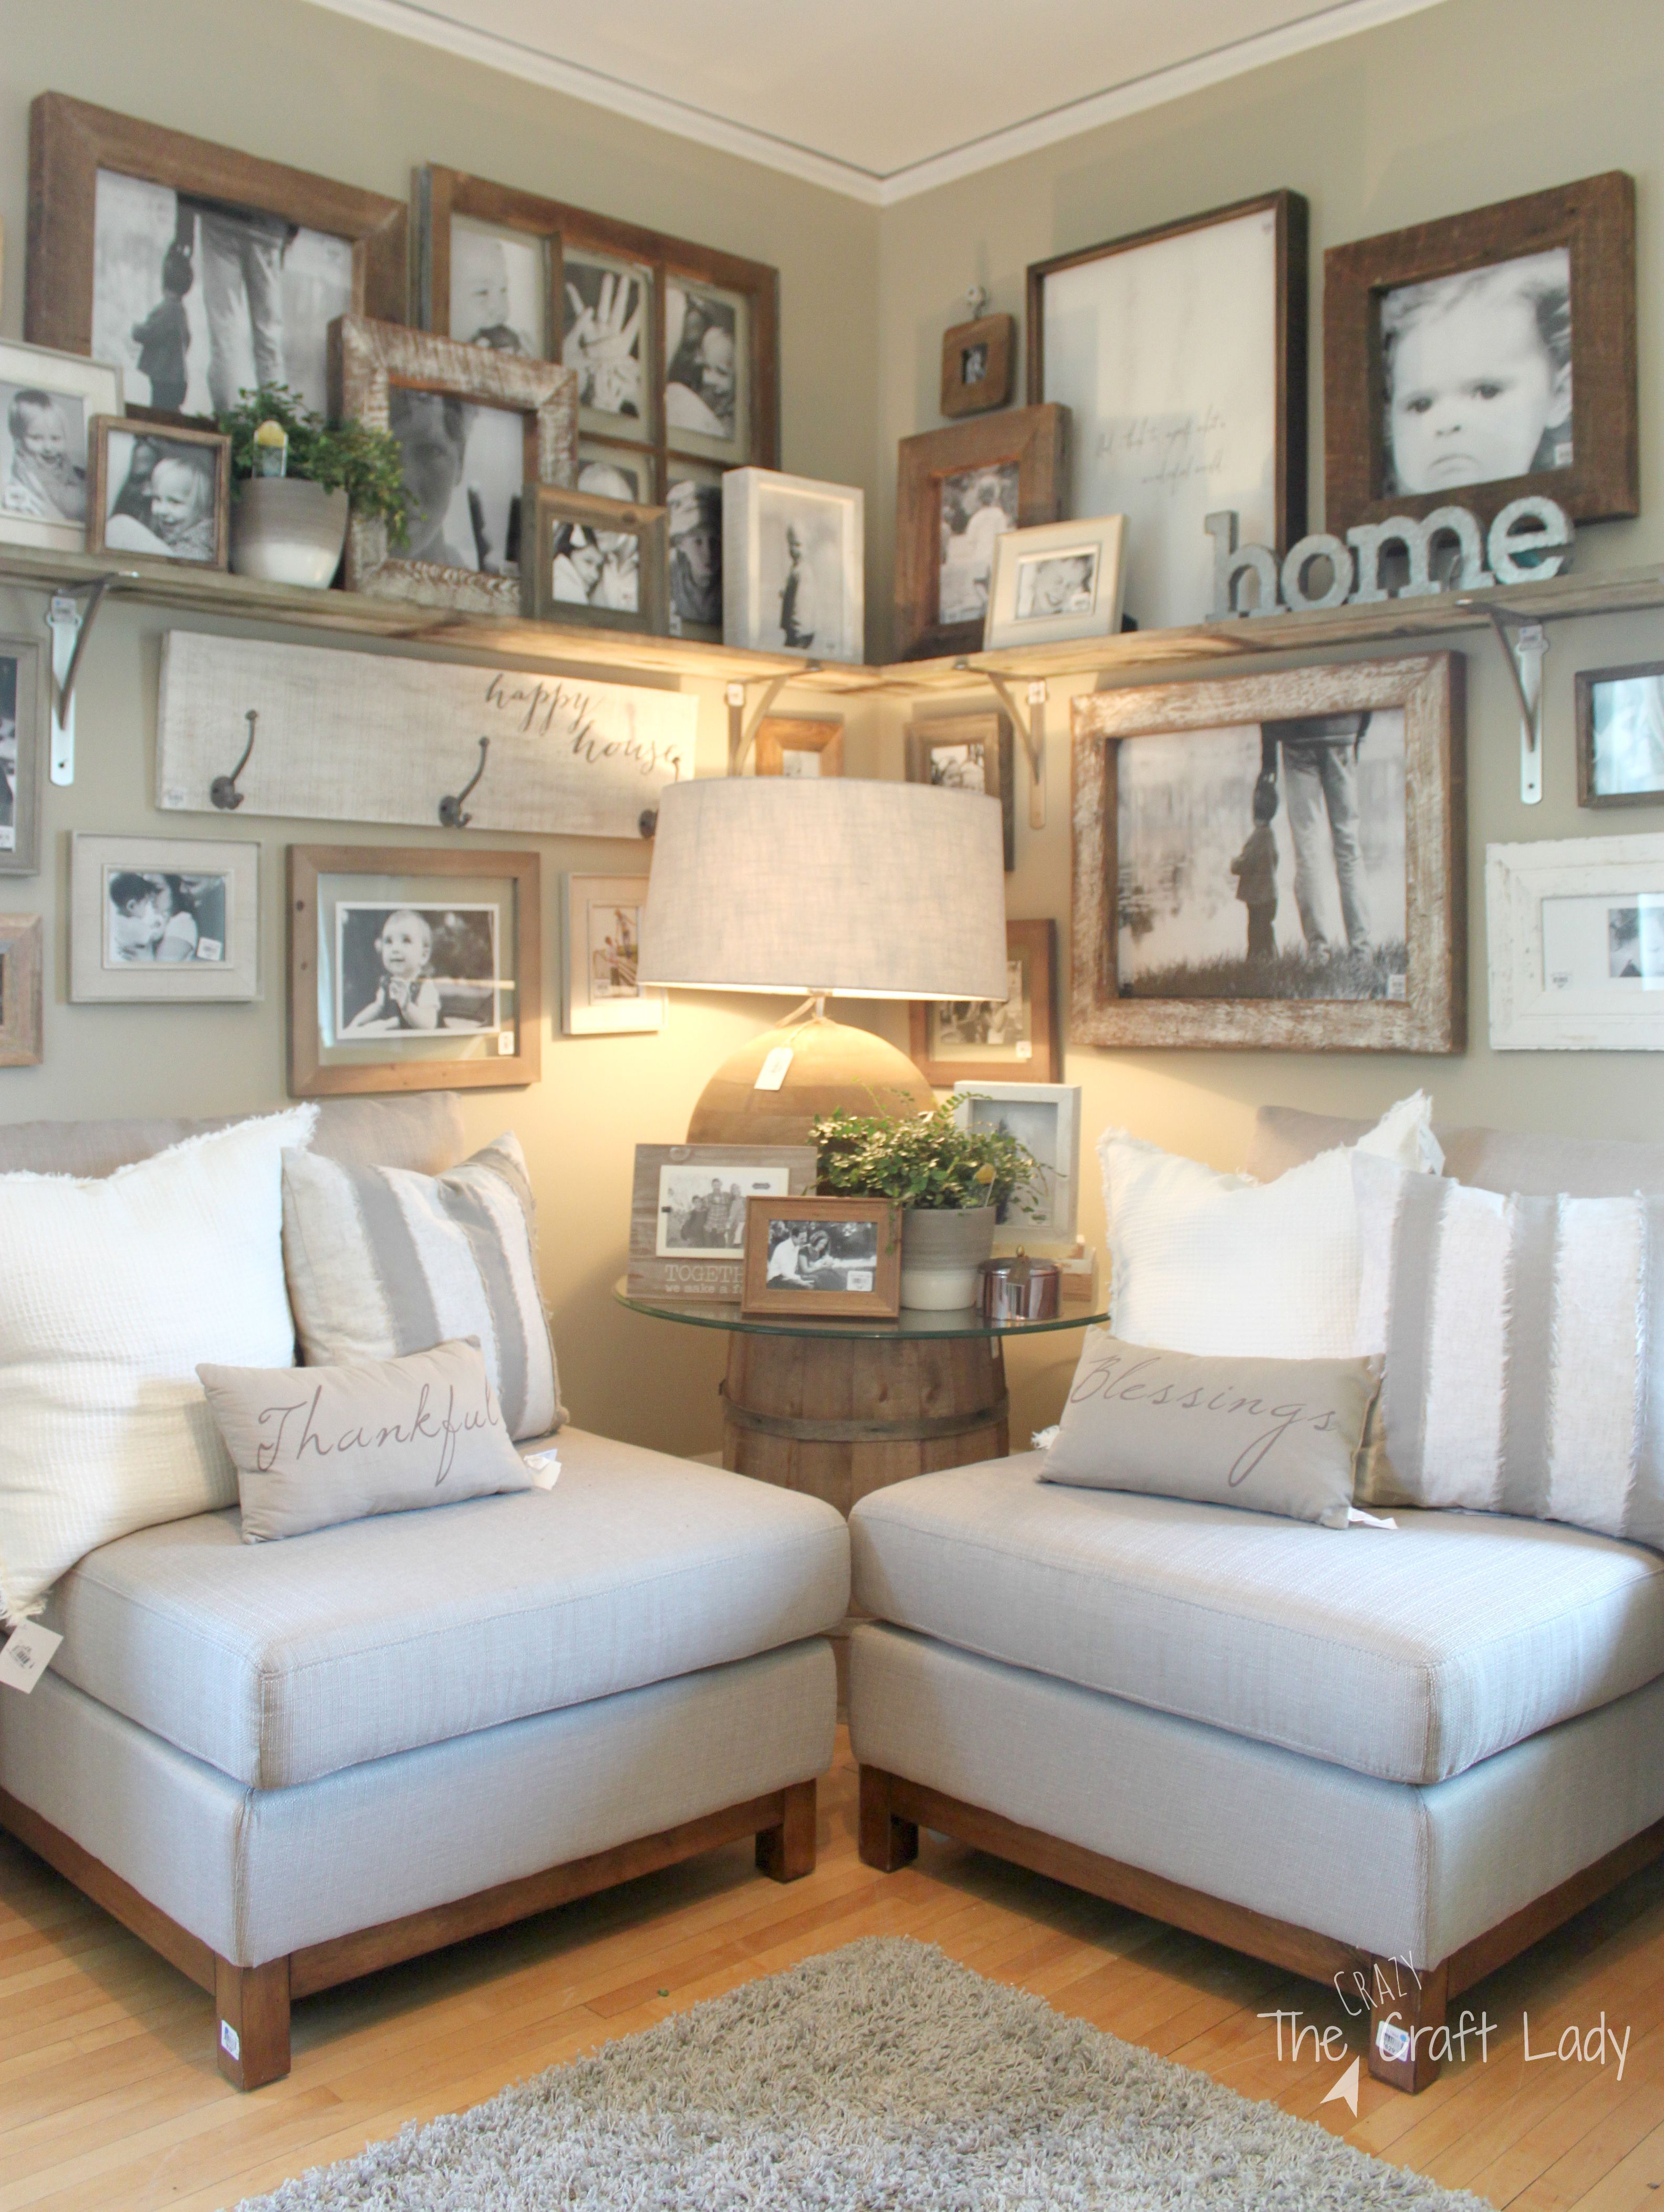 10 Top Wall Decor Ideas For Small Living Room